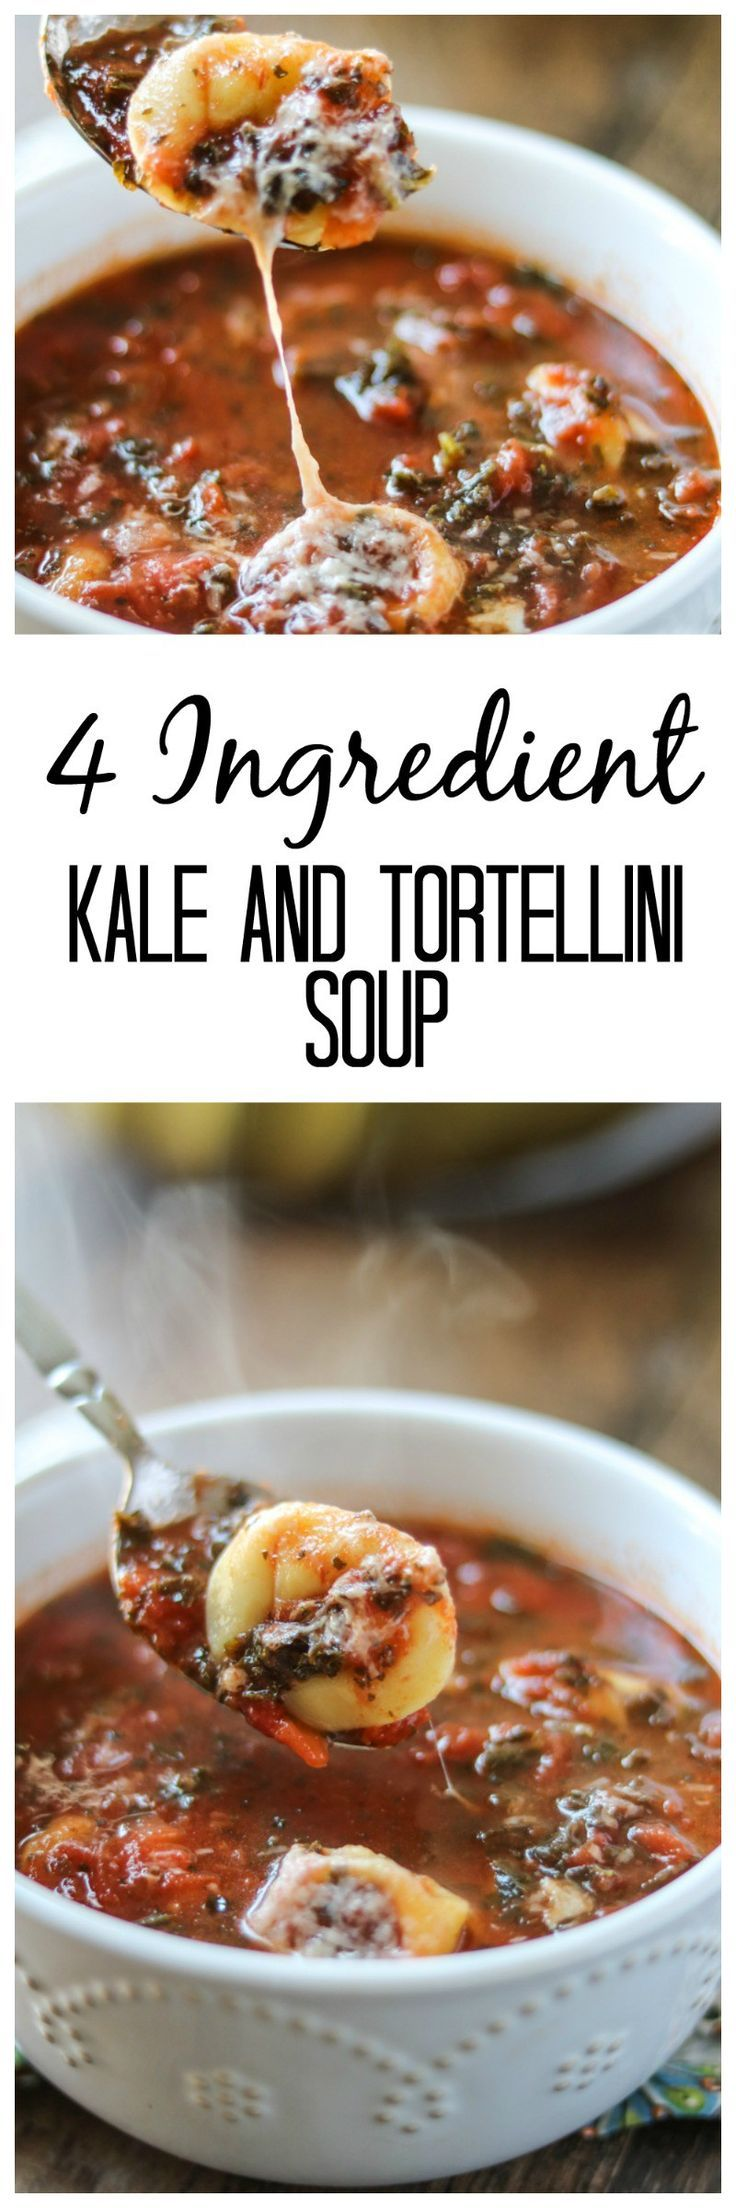 Kale and Tortellini Soup: 4 Ingredients create a comforting, hearty, and delicious soup.